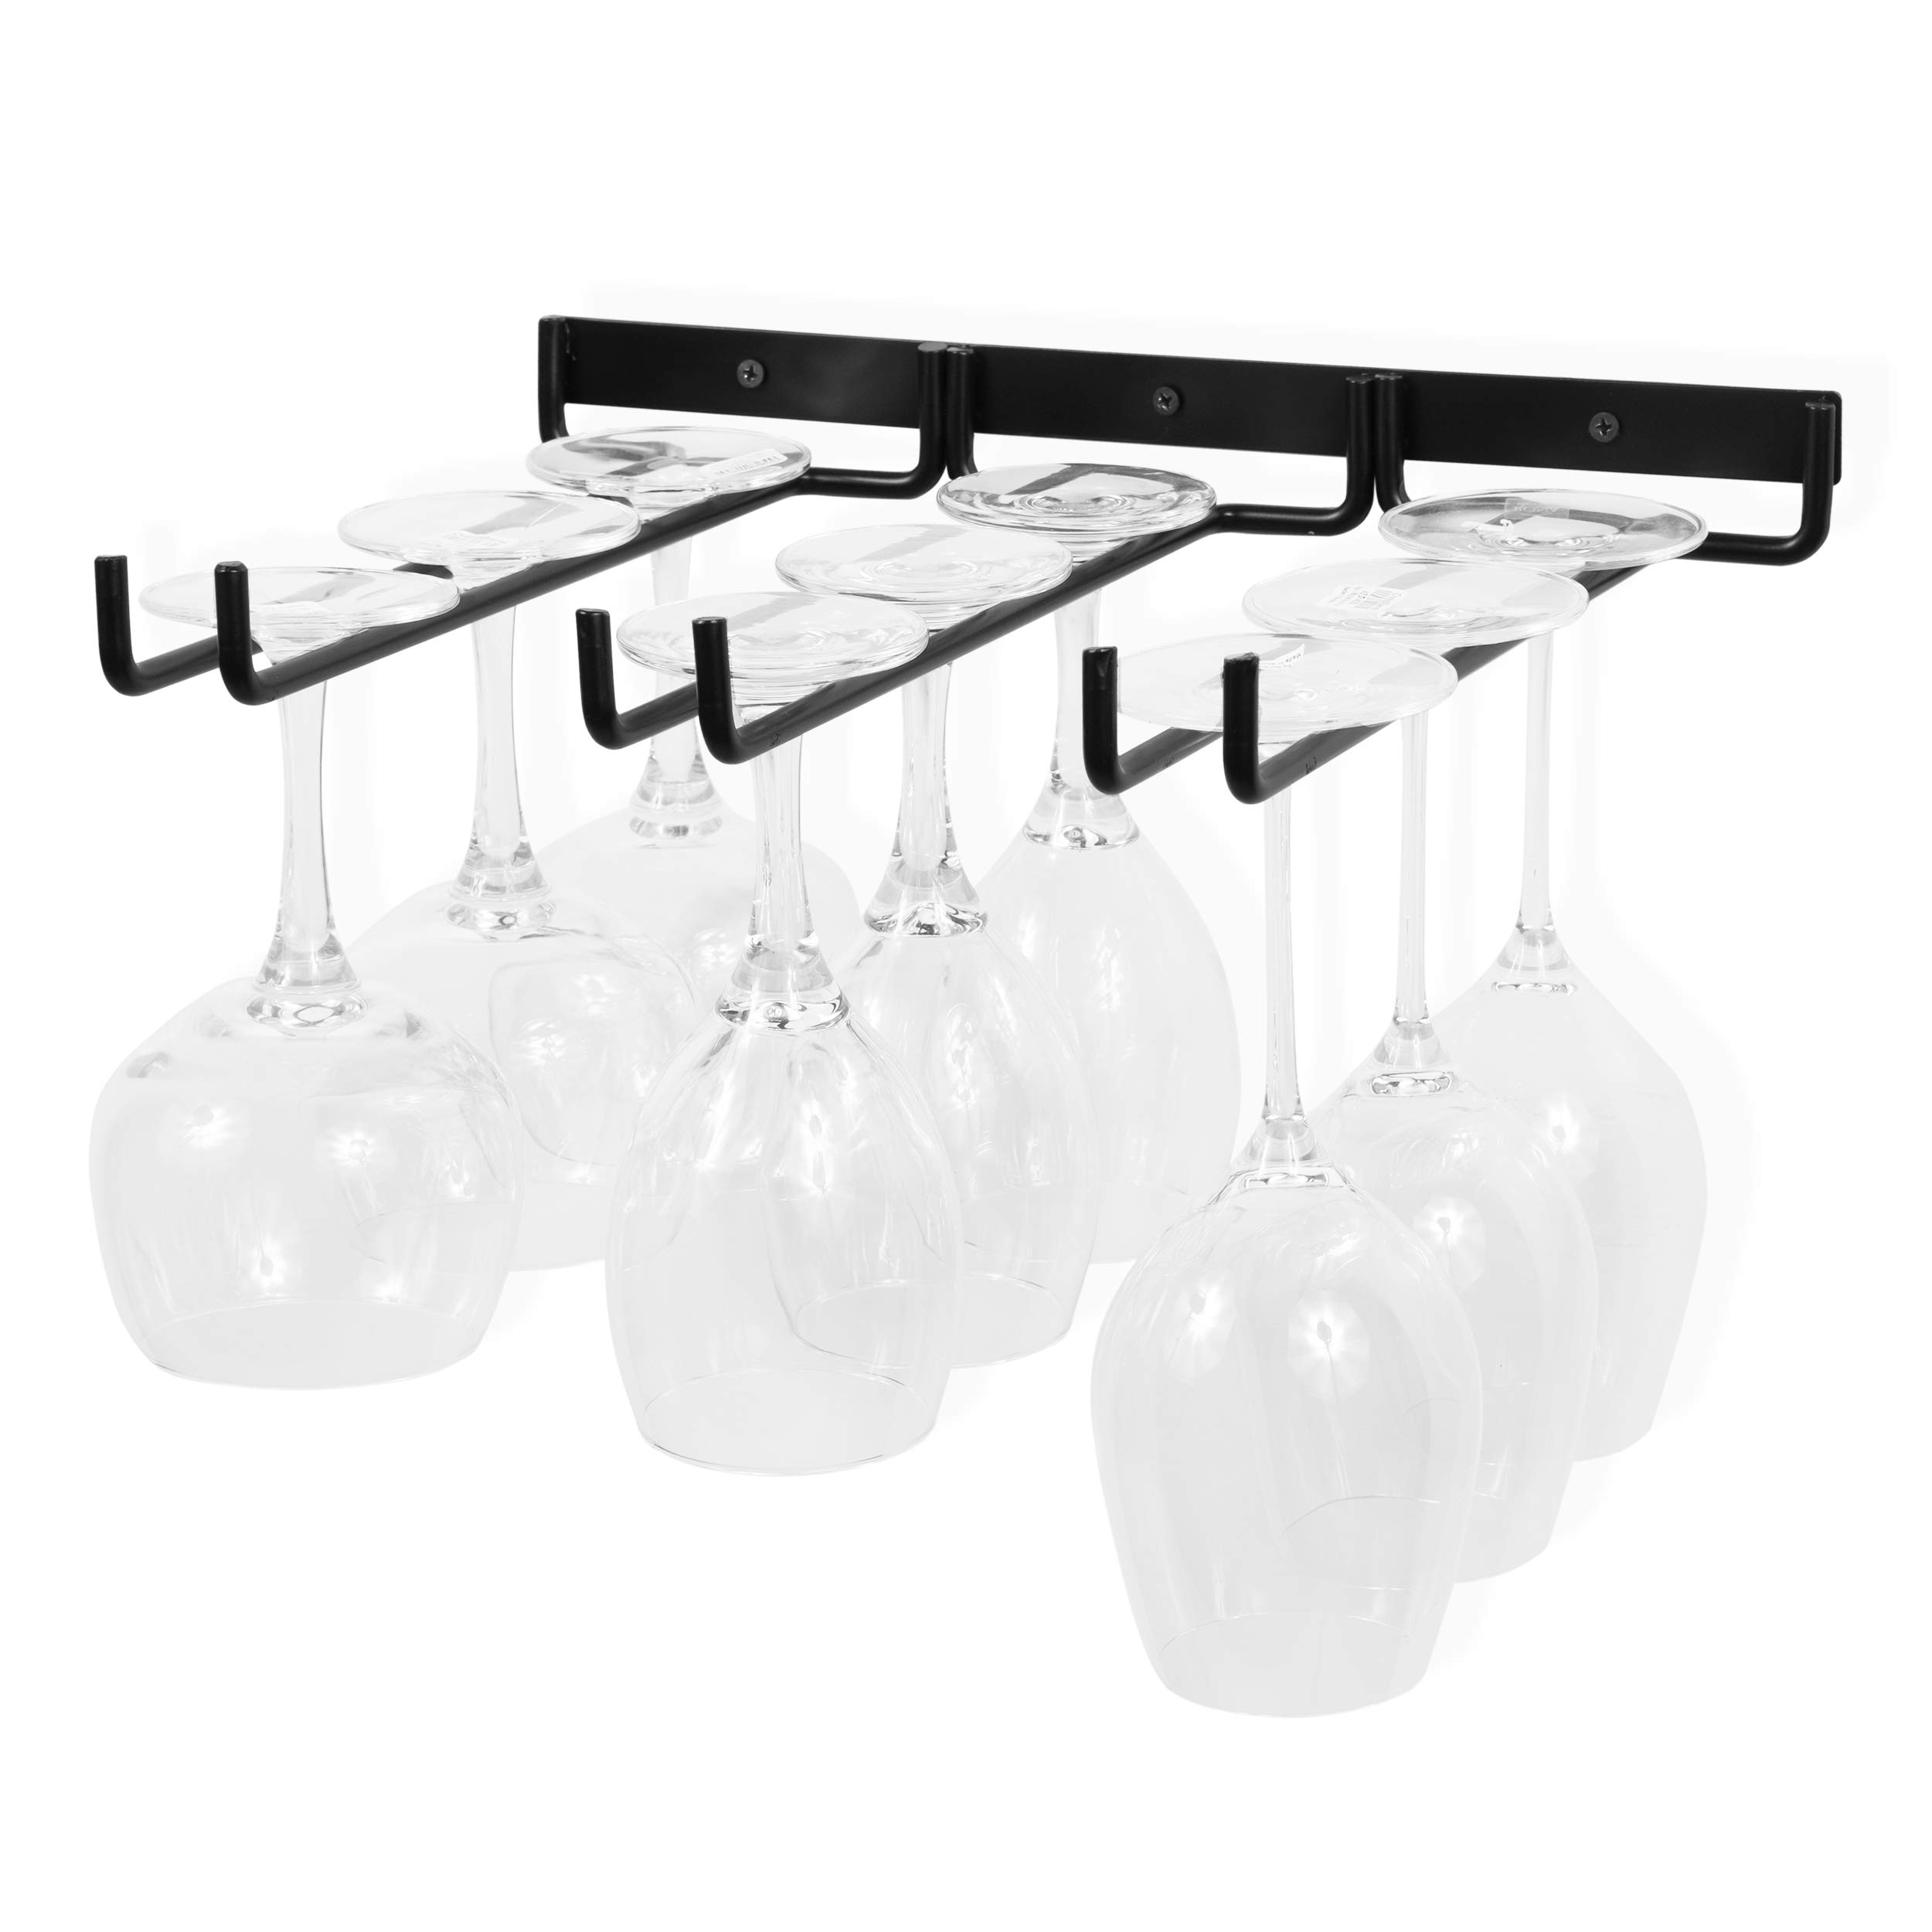 Wallniture Stemware Wine Glass Rack Wall Mountable Wrought Iron 3 Rows Black 13 Inch Deep by Wallniture